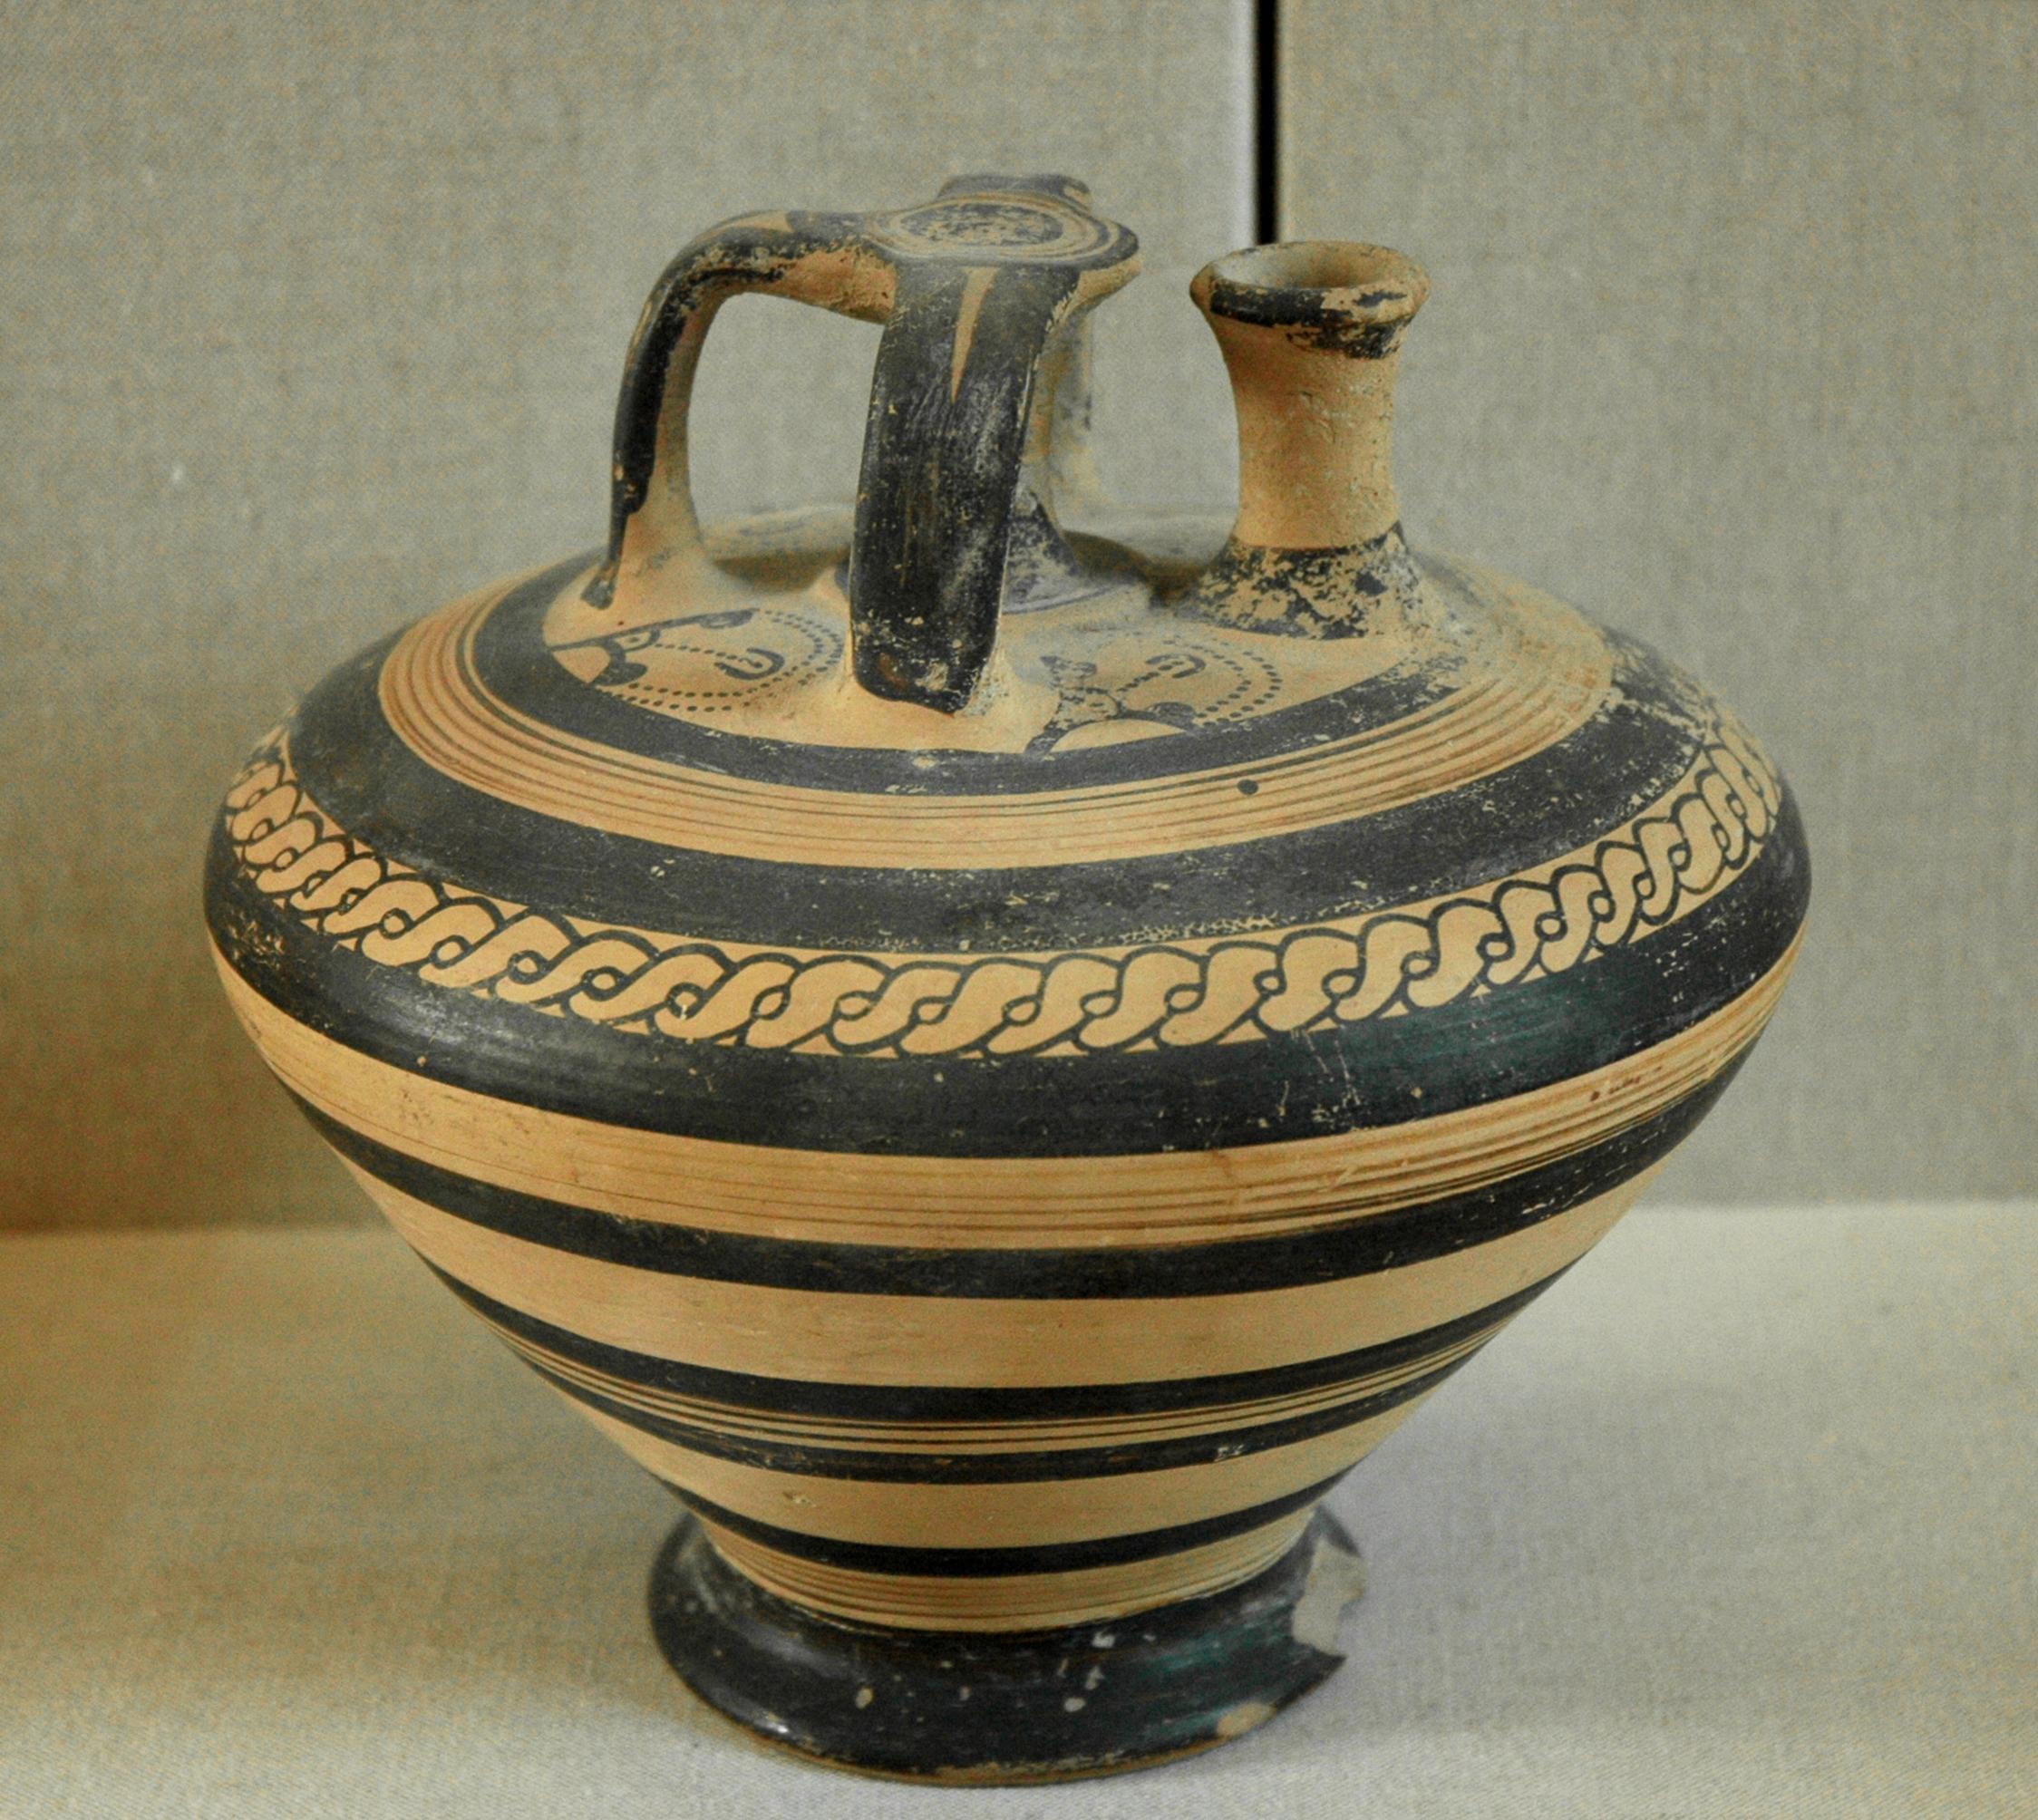 Mycenaean stirrup vase, 14th-13th centuries BC, imported to Ugarit. Found in the acropolis of Ras Shamra (ancient Ugarit), tomb 37.